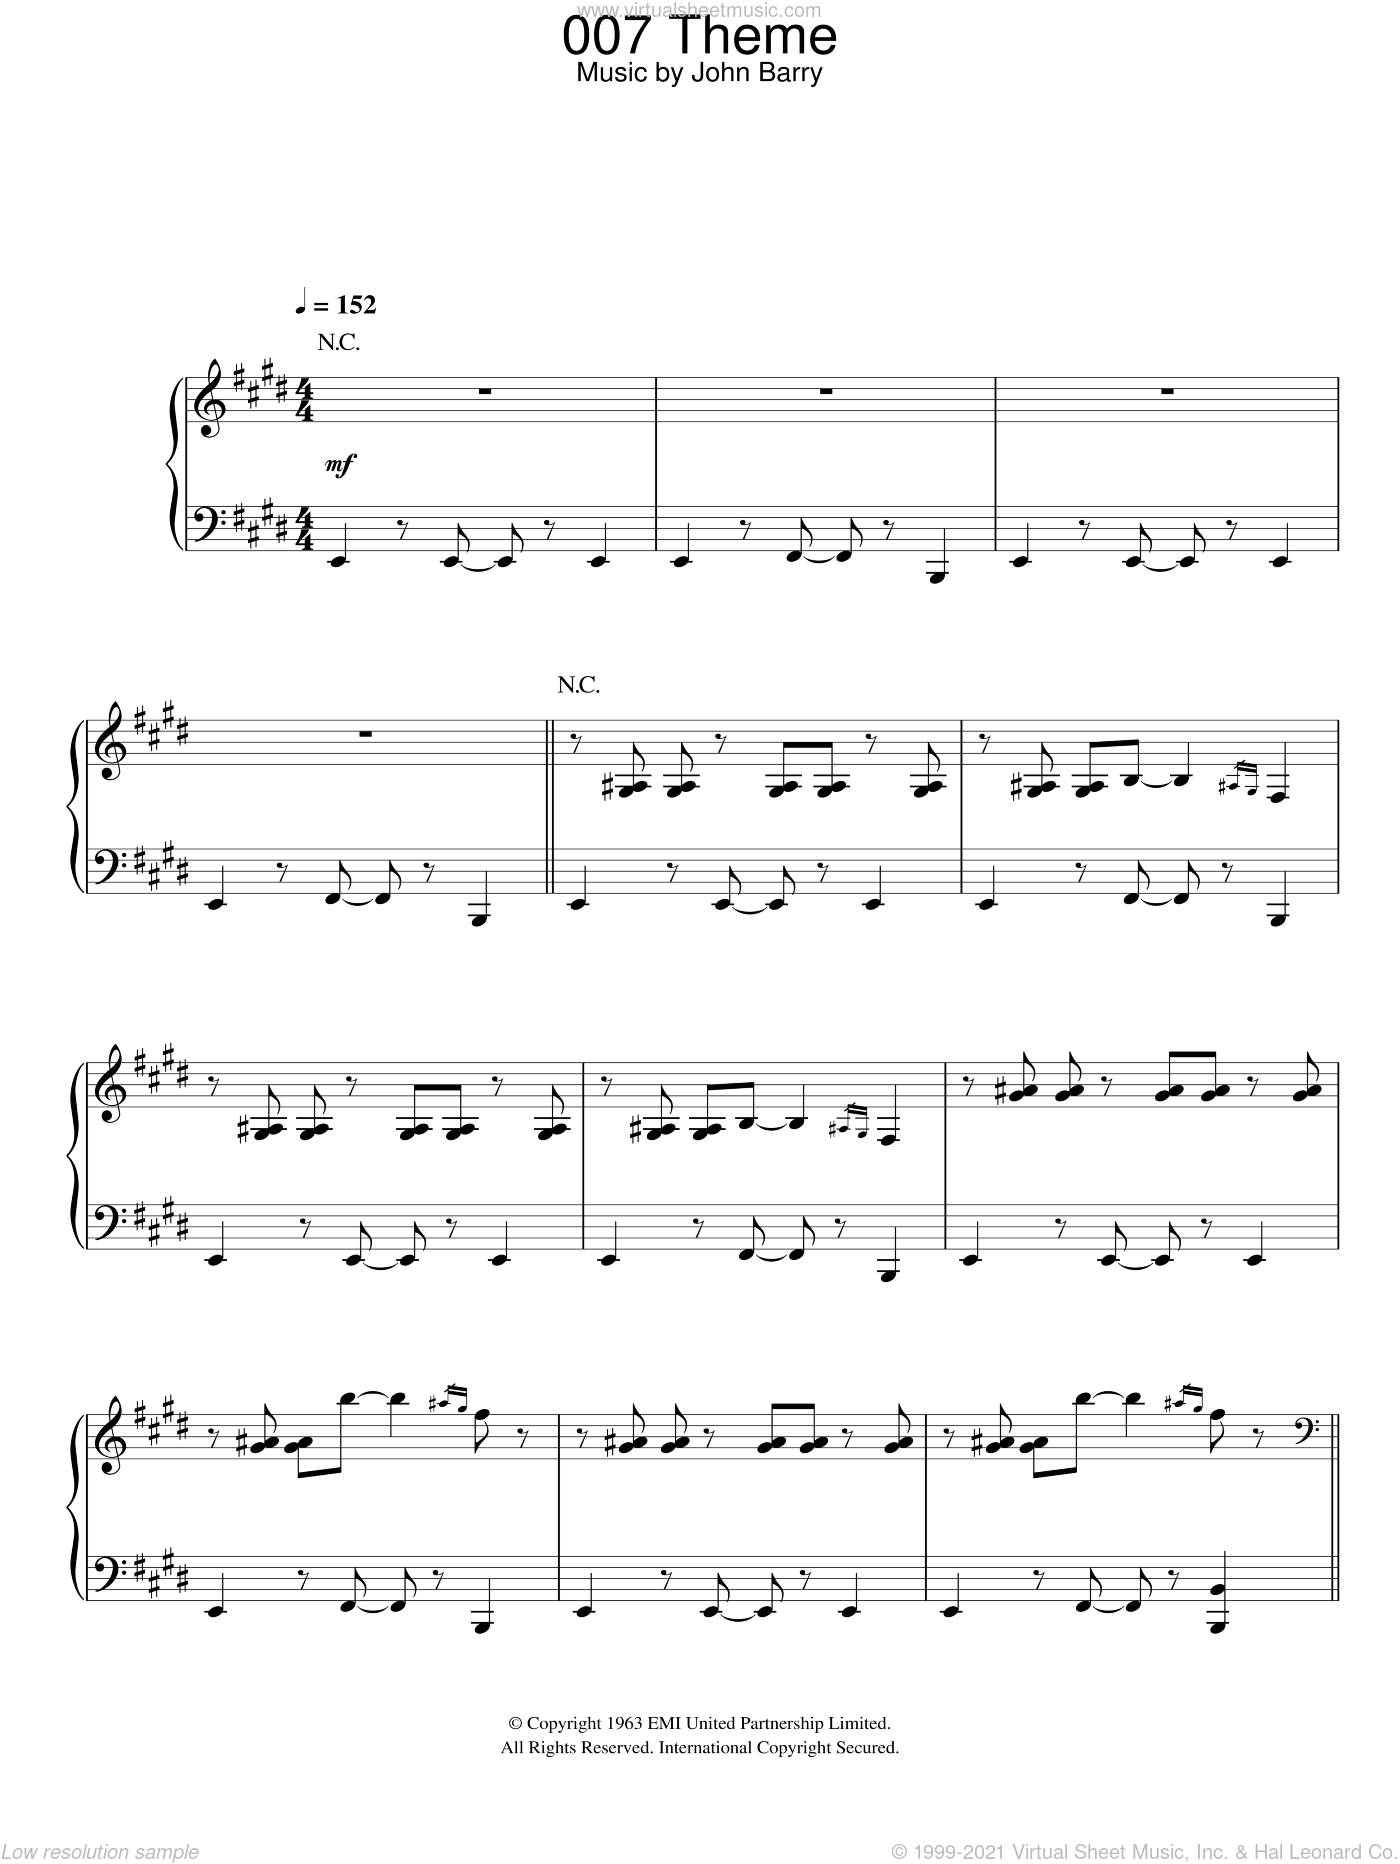 007 Theme sheet music for piano solo by John Barry, intermediate skill level